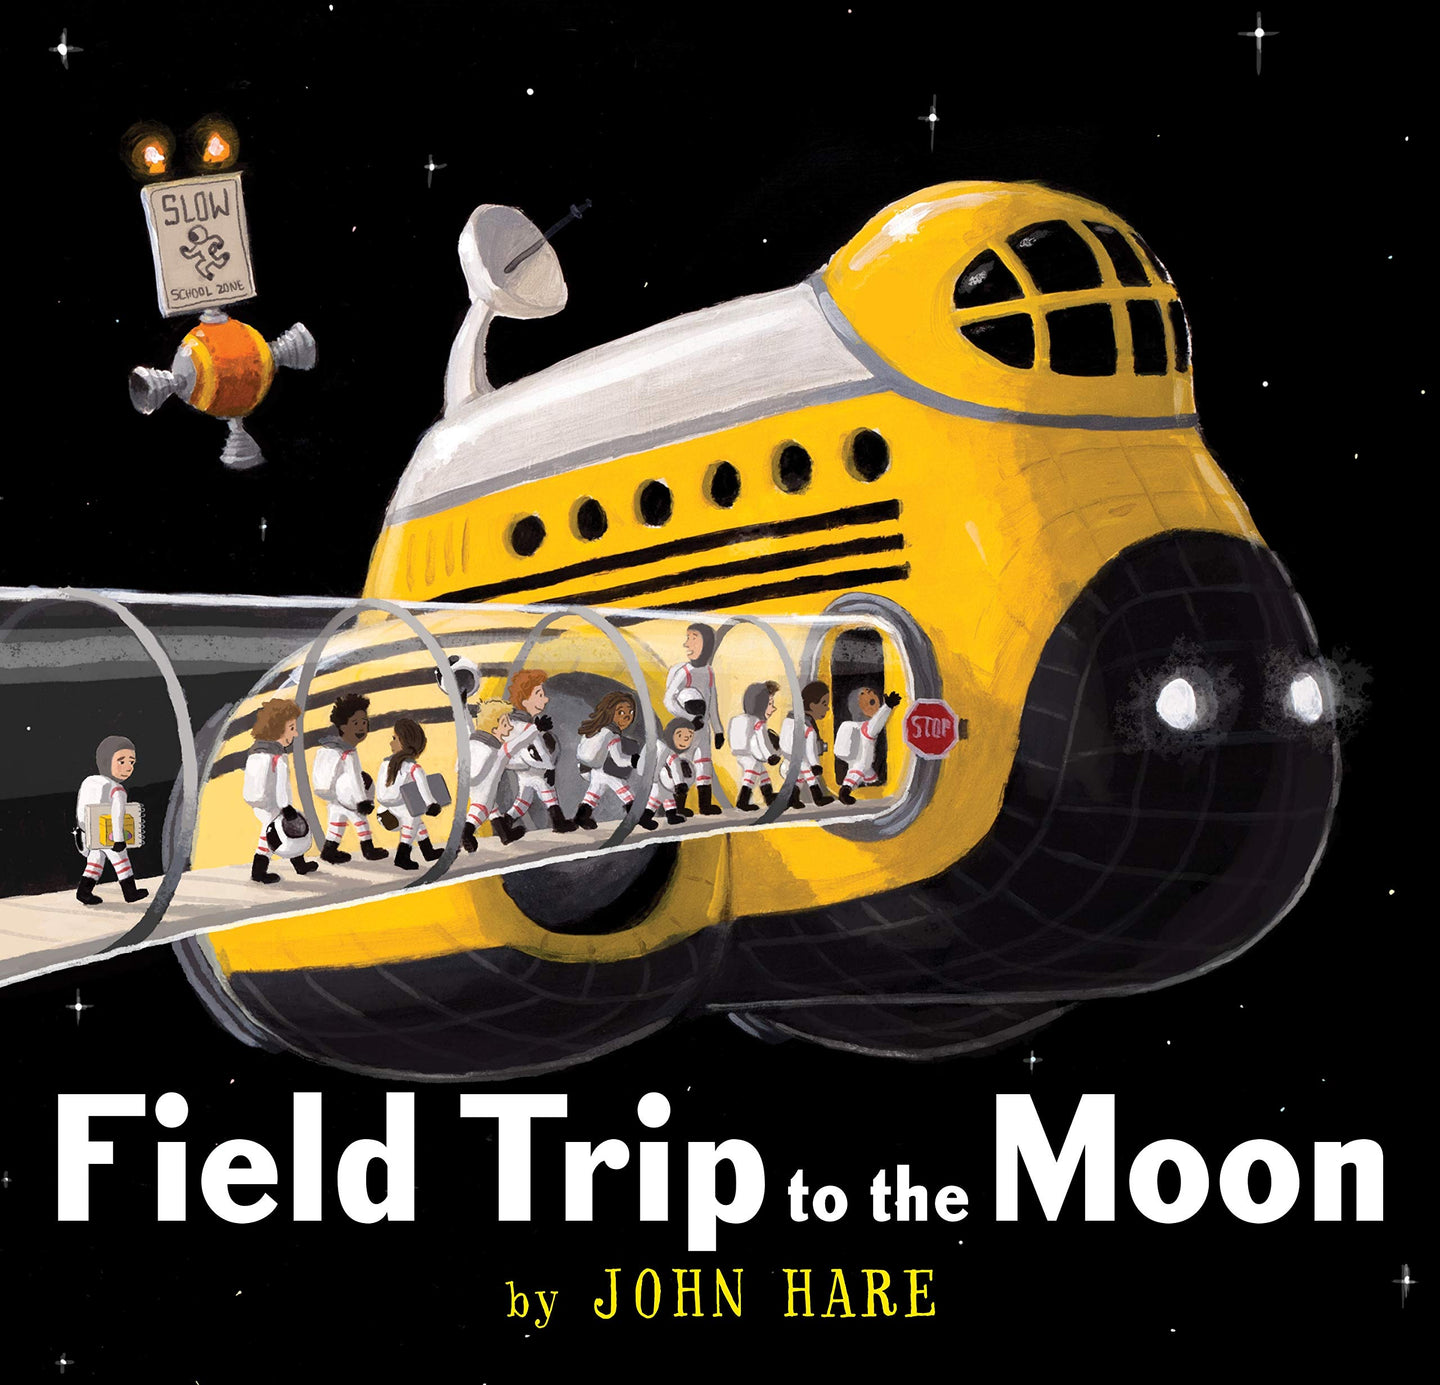 Field Trip to the Moon (Hardback)